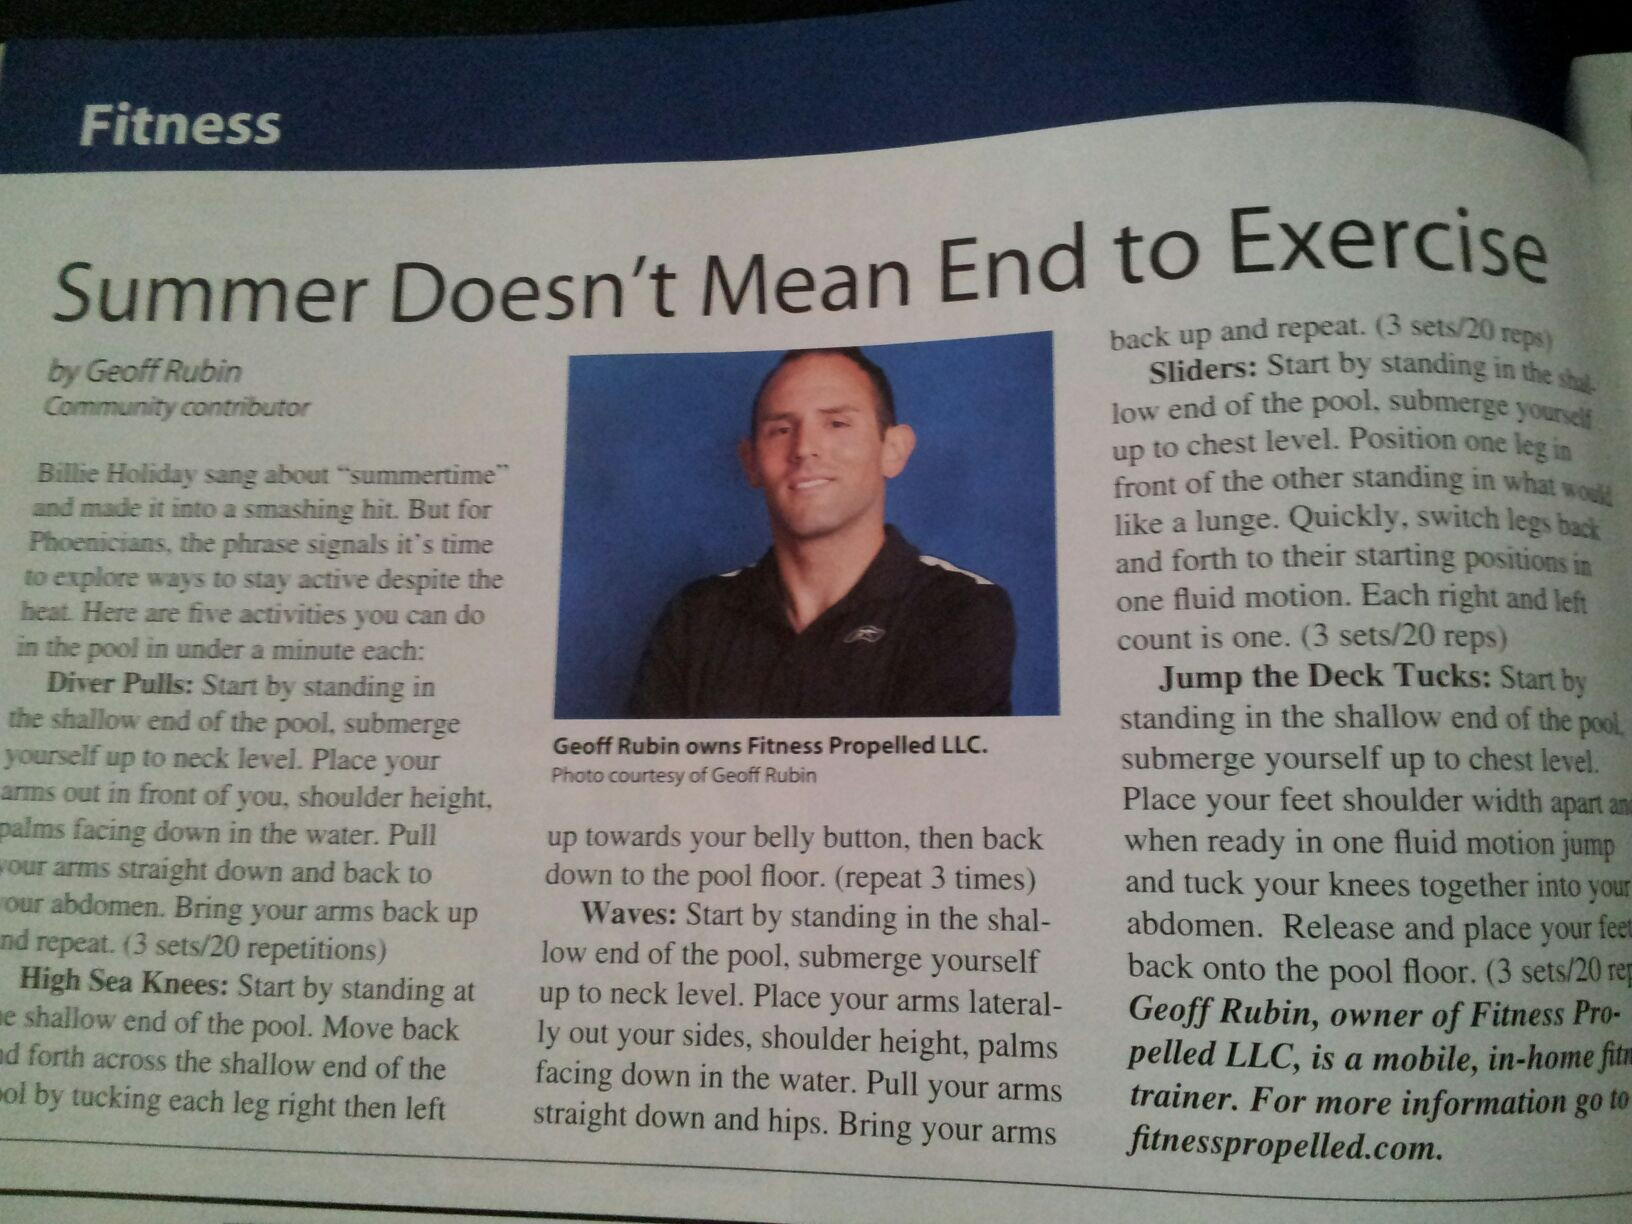 Summer doesn't mean an end to exercise